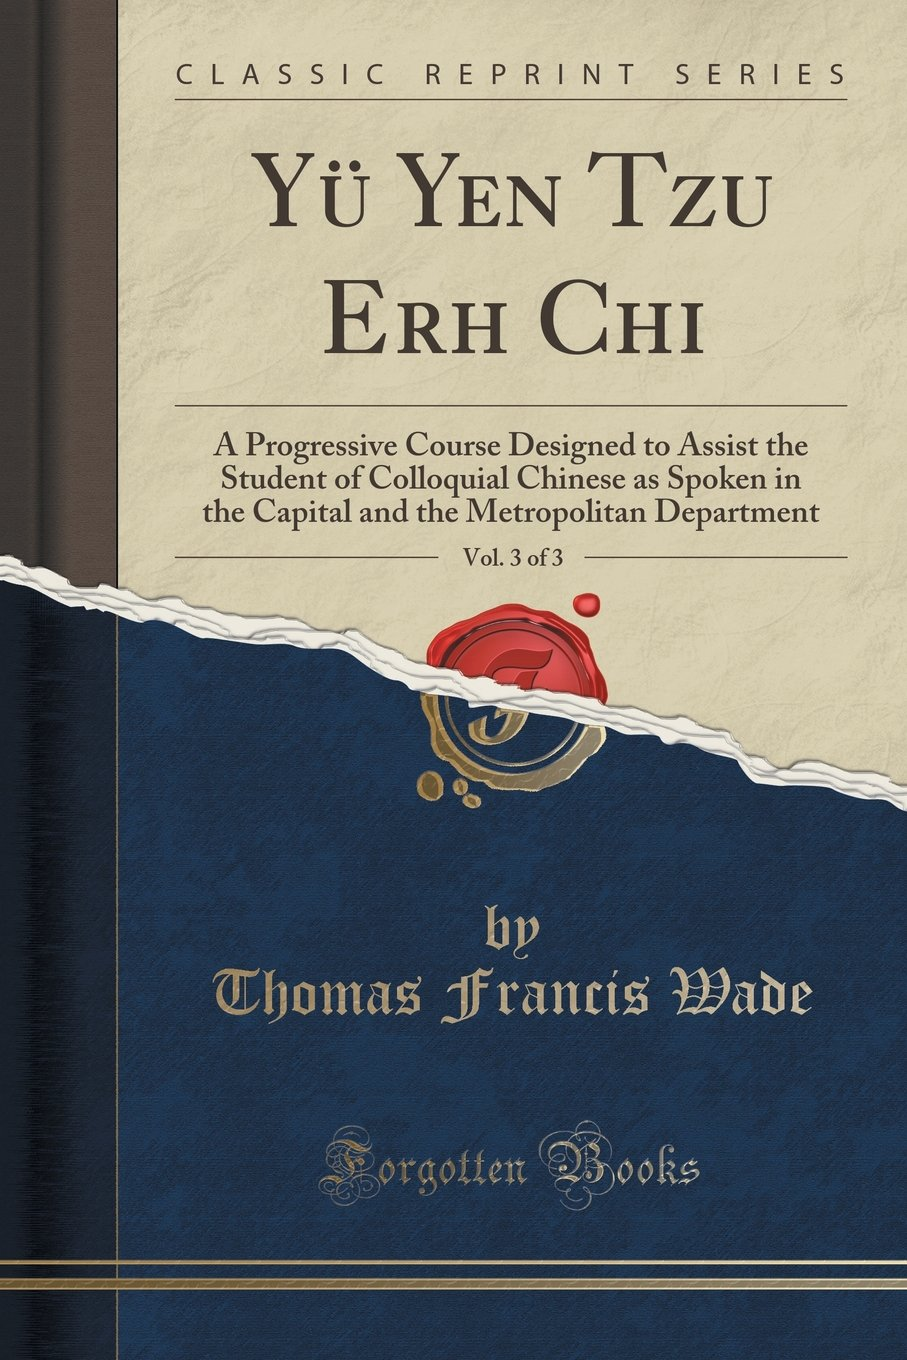 Download Yü Yen Tzu Erh Chi, Vol. 3 of 3: A Progressive Course Designed to Assist the Student of Colloquial Chinese as Spoken in the Capital and the Metropolitan Department (Classic Reprint) pdf